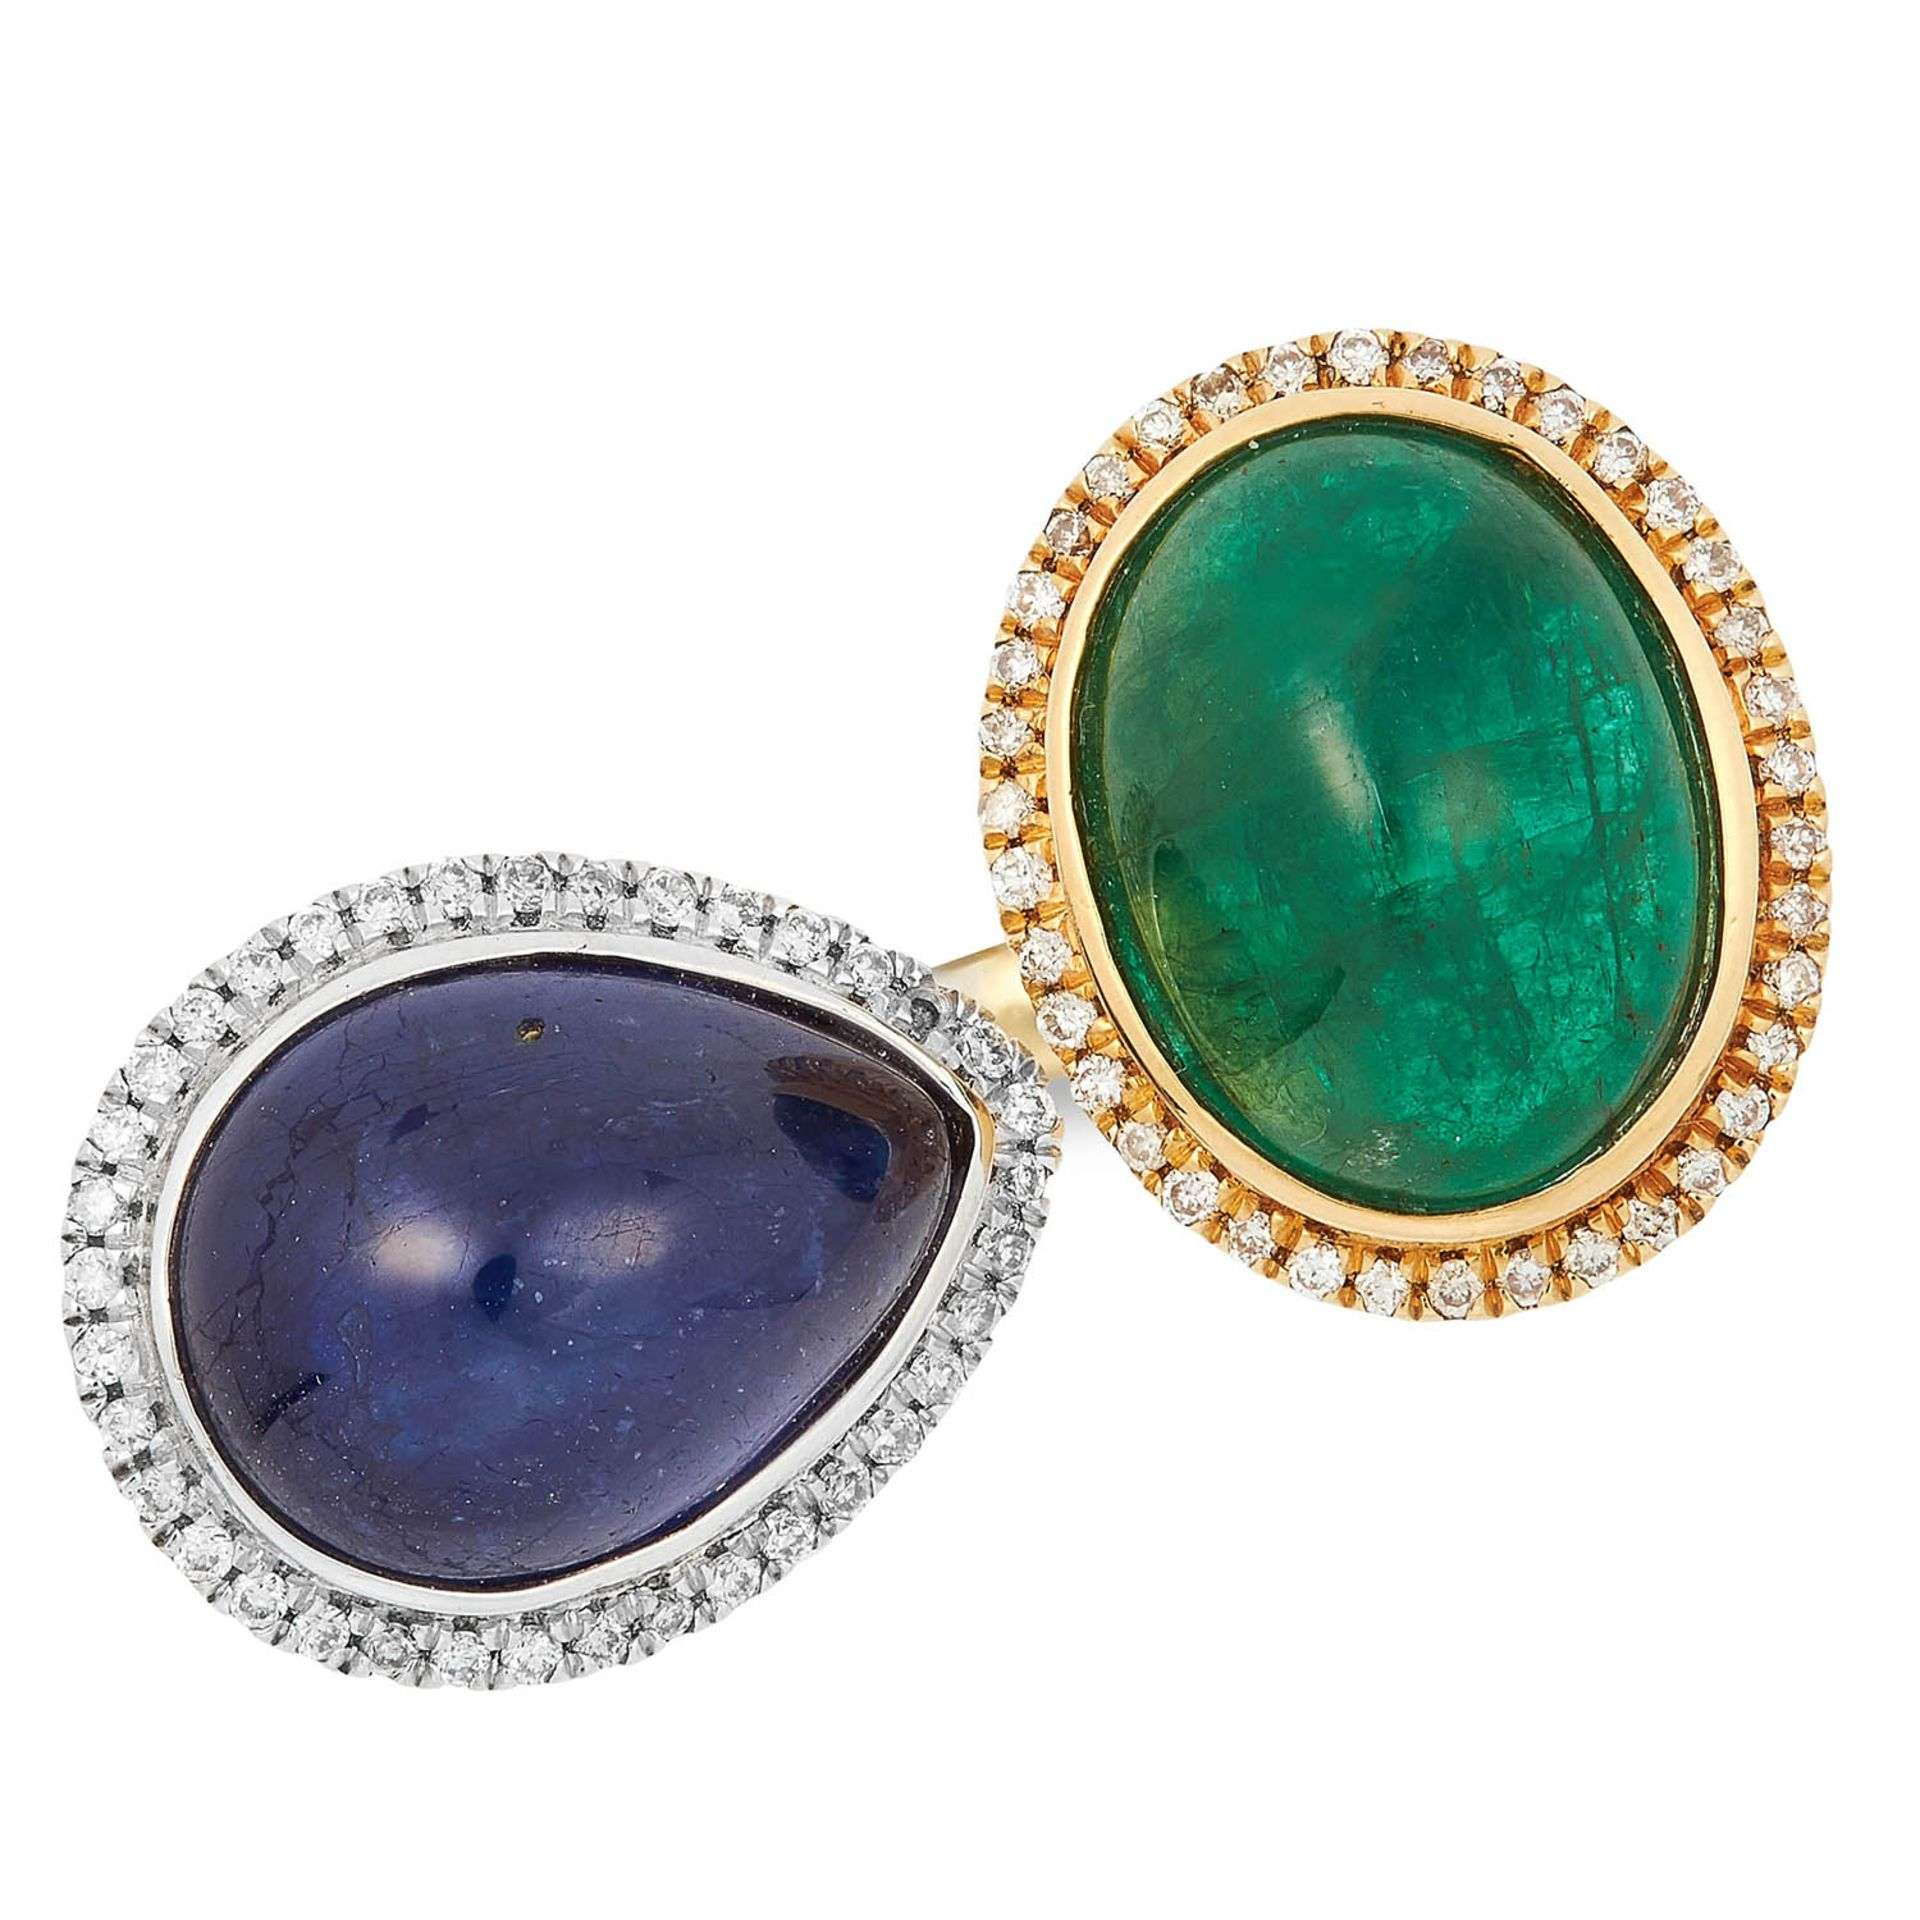 SAPPHIRE, EMERALD AND DIAMOND RING set with a cabochon sapphire and emerald in a border of round cut